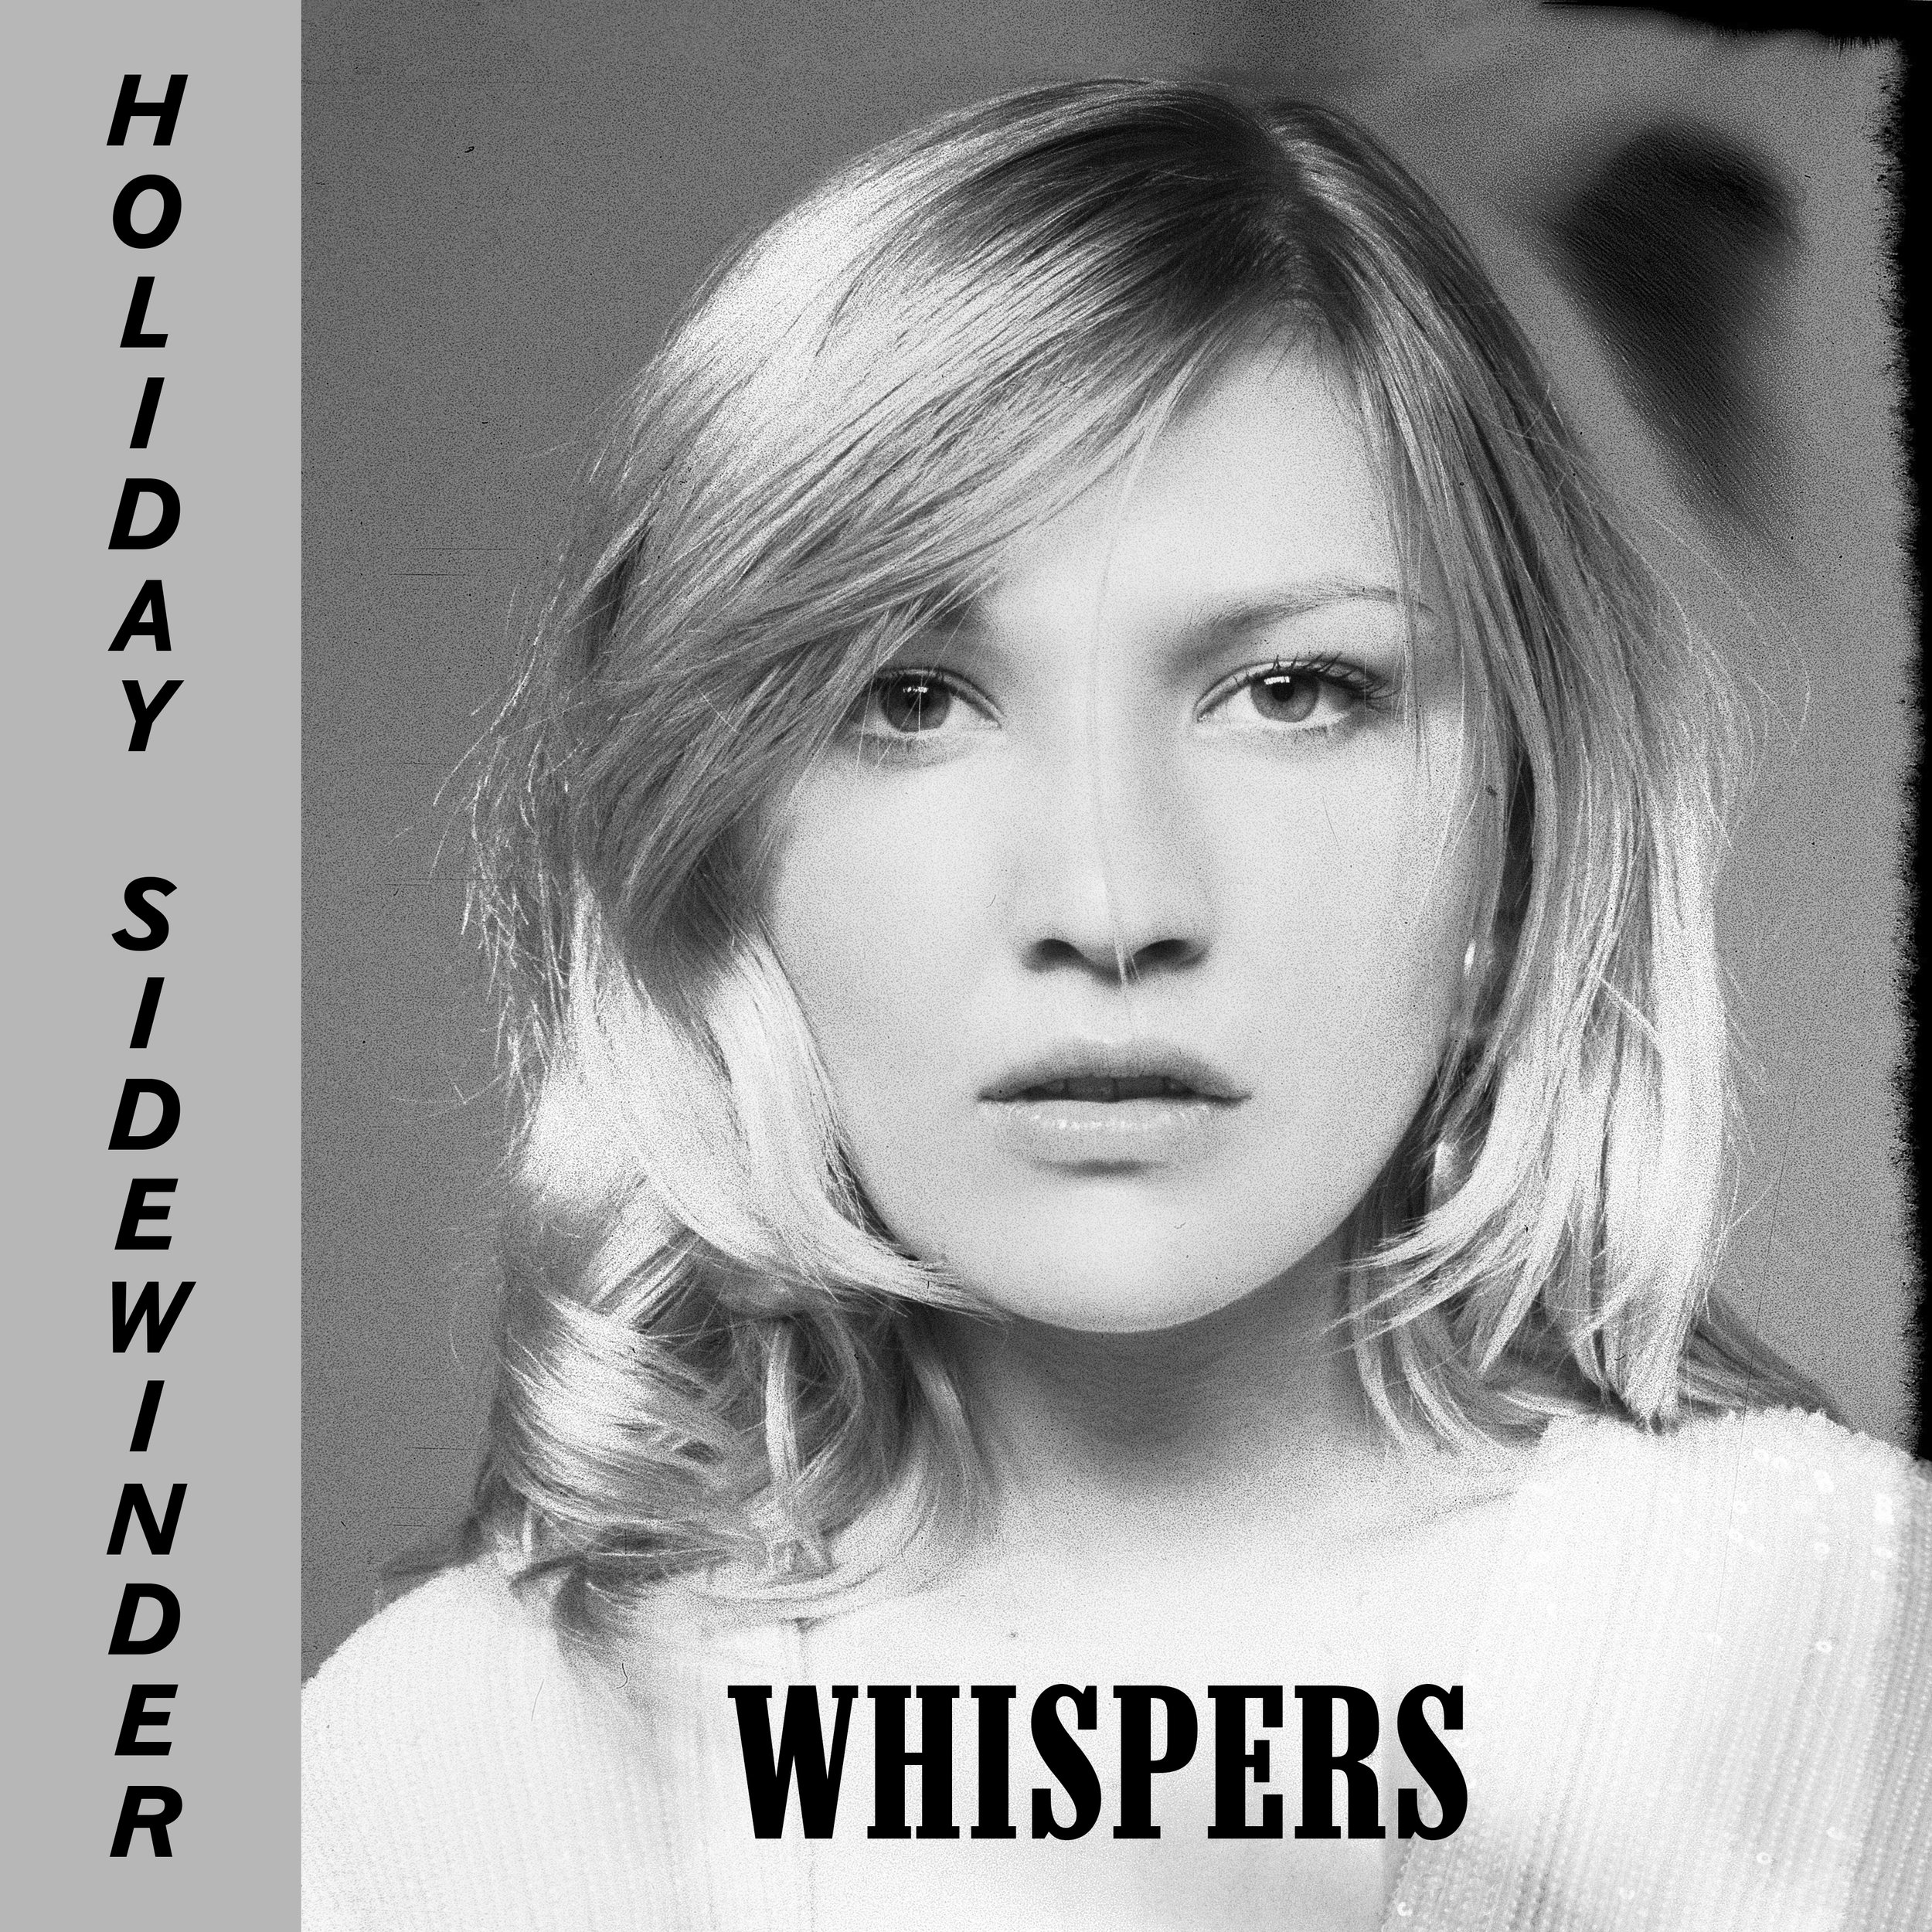 Whispers-Holiday-Sidewinder-Made-In-Chelsea.jpg